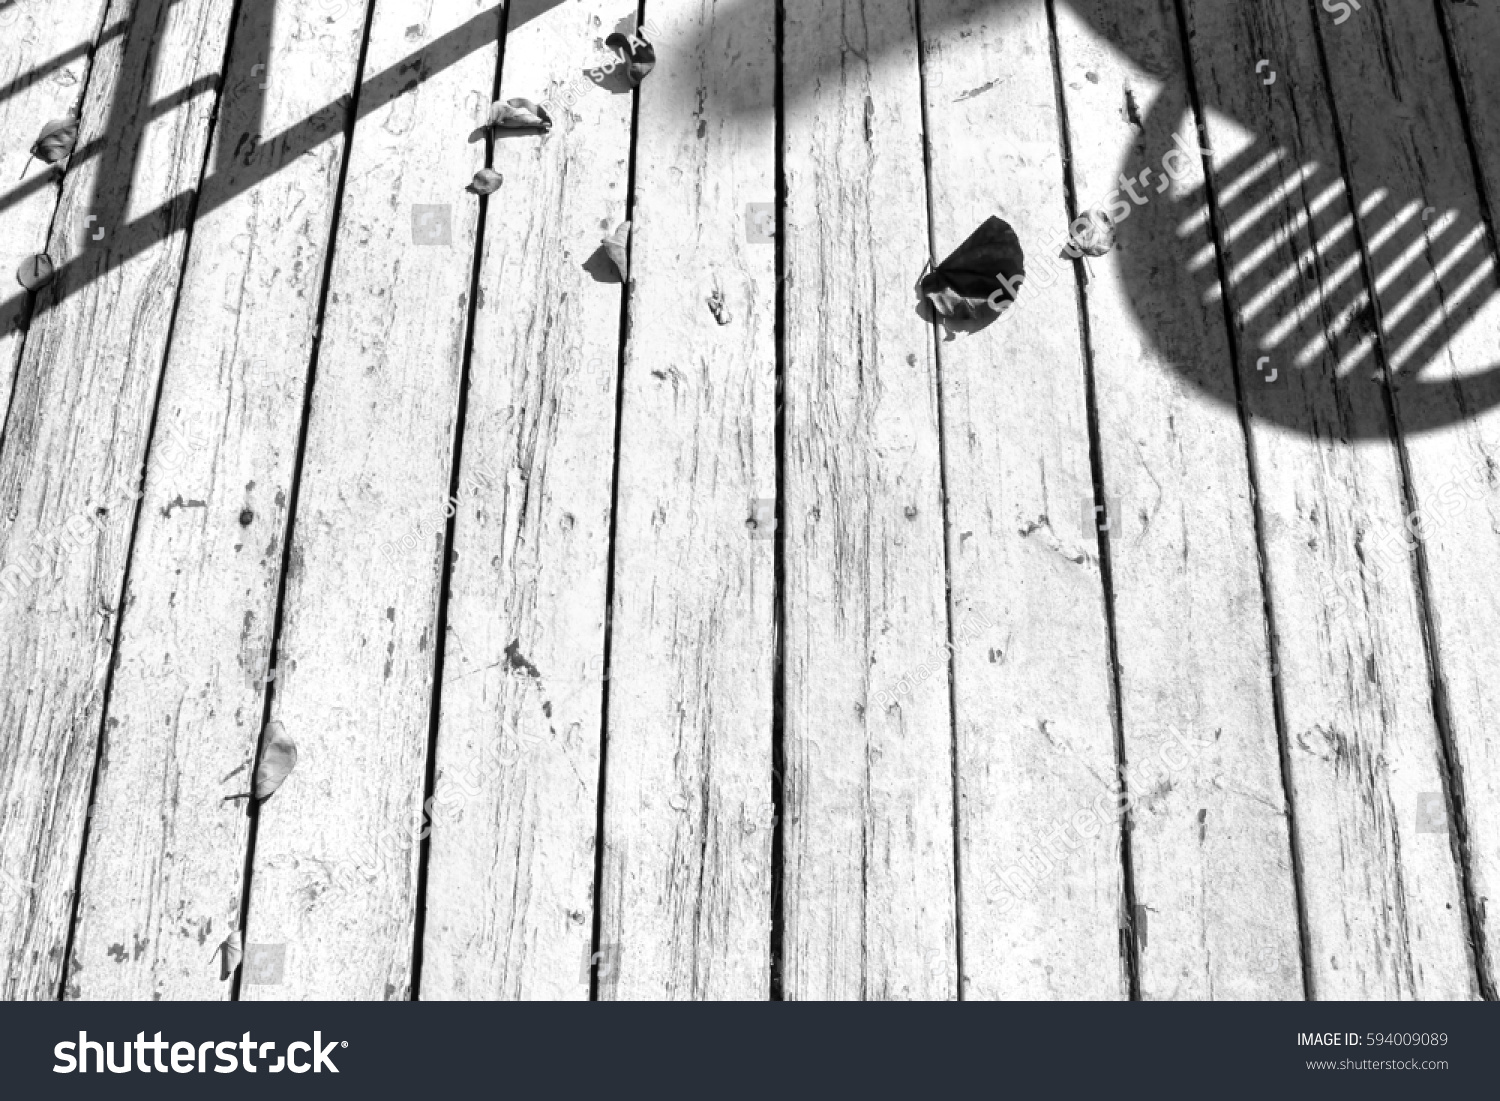 Rustic White Wood Floor With Fallen Dry Leaves And Furniture Hard Shadows  On Shabby Boards.